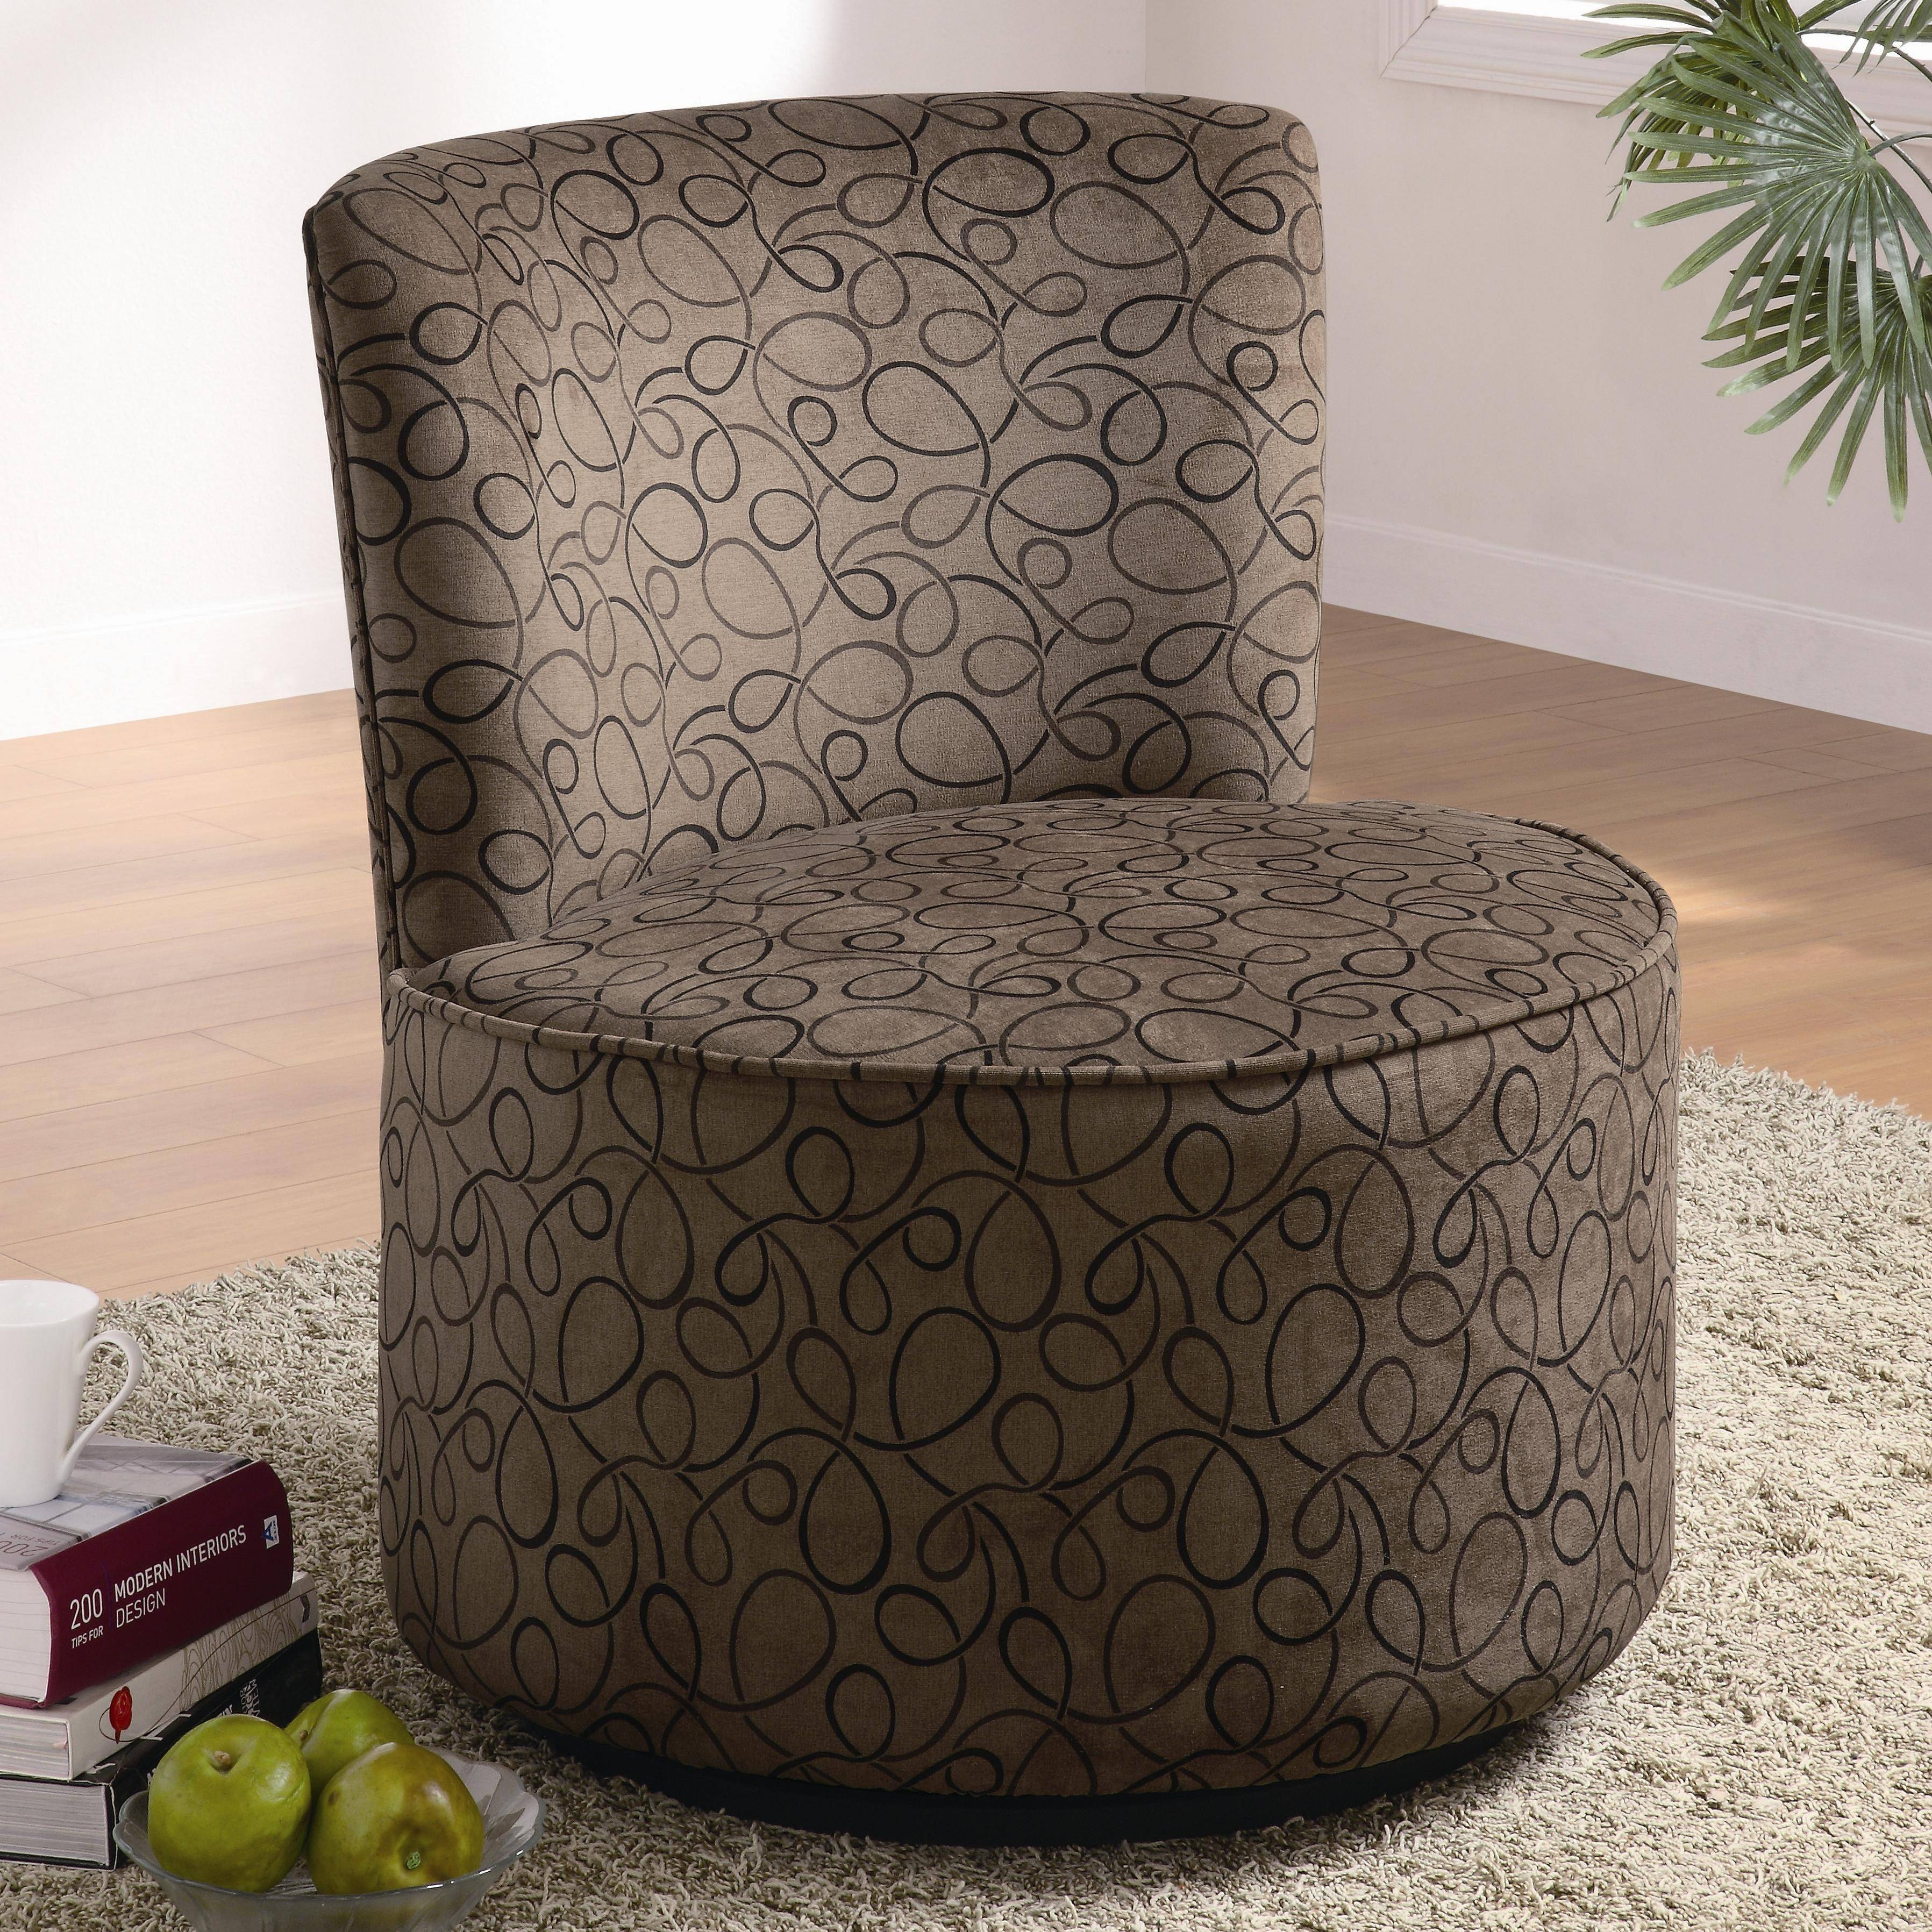 Sofas Center : Inspirational Round Sofahair Living Room Furniture within Big Round Sofa Chairs (Image 25 of 30)